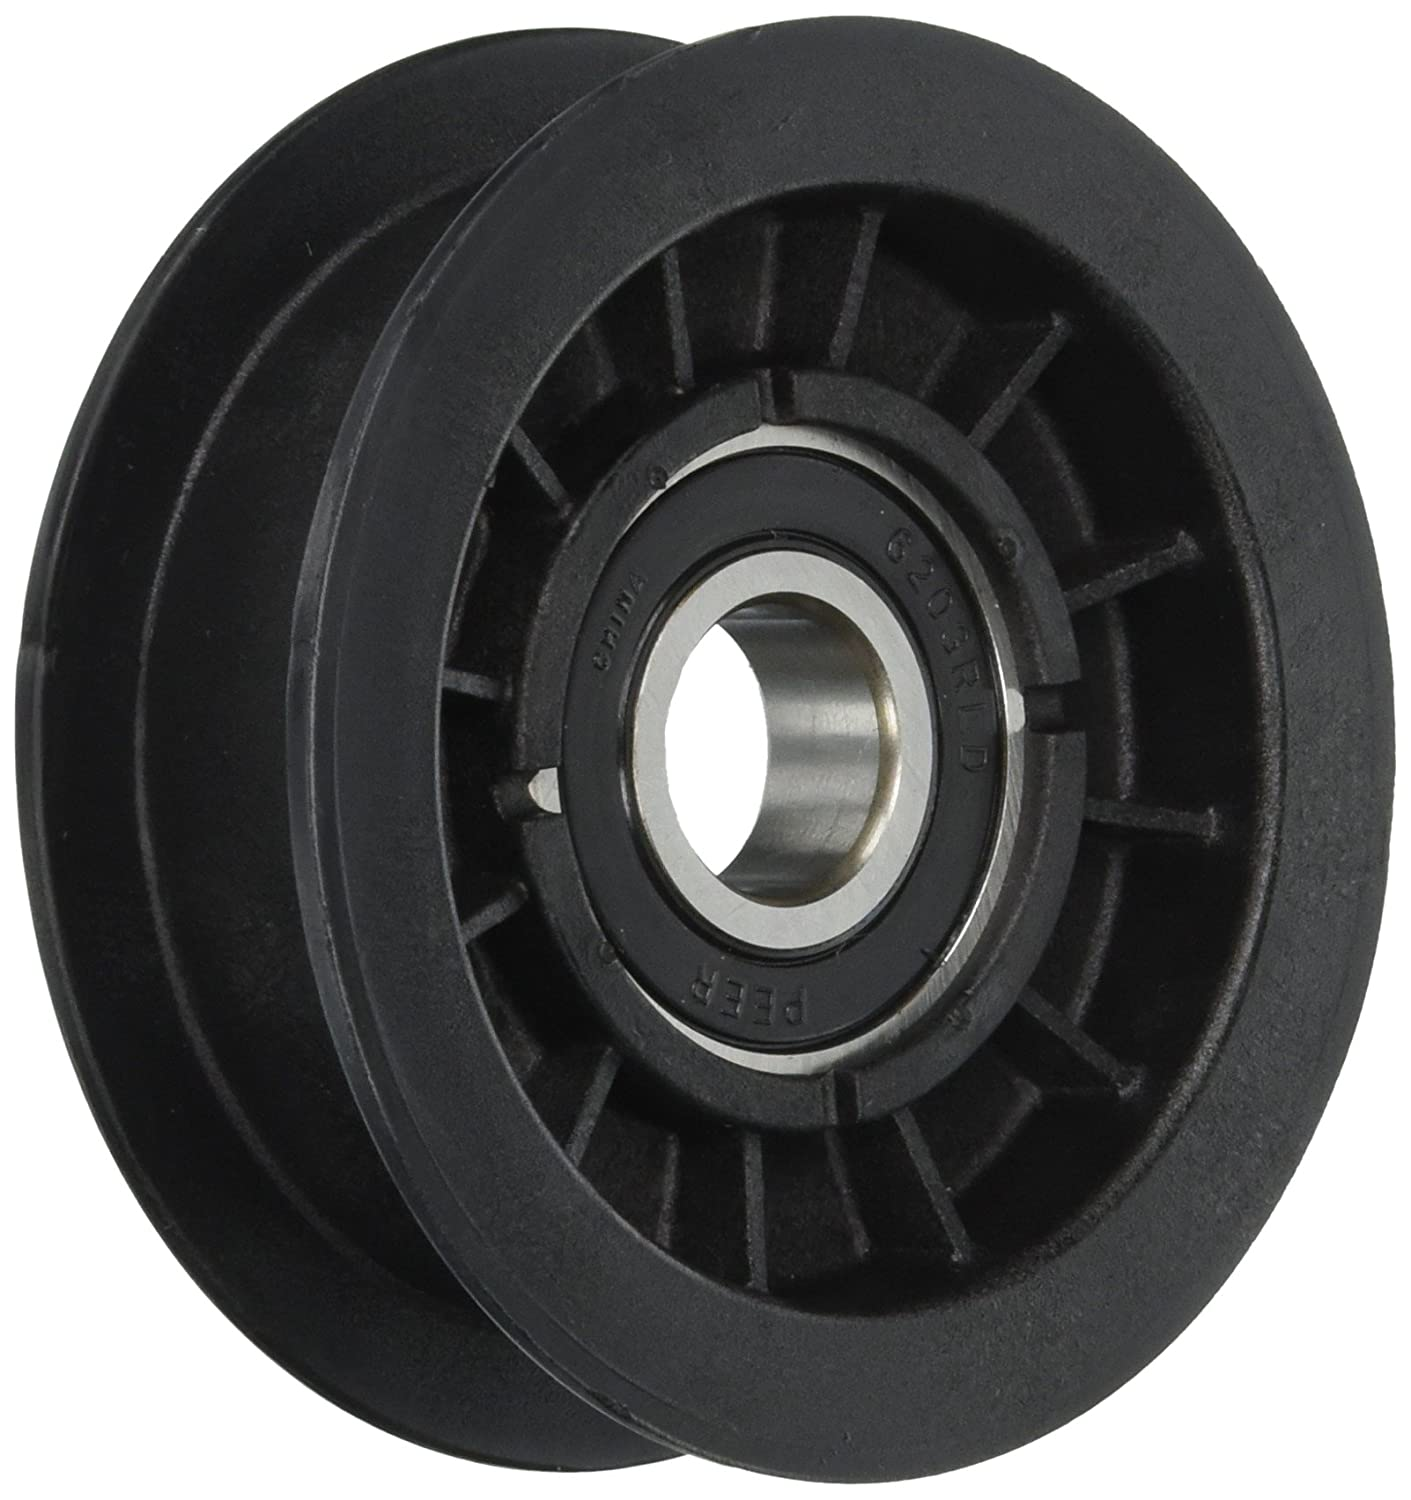 IDLER PULLEY FOR MURRAY REPL 690409 (21/ 9544